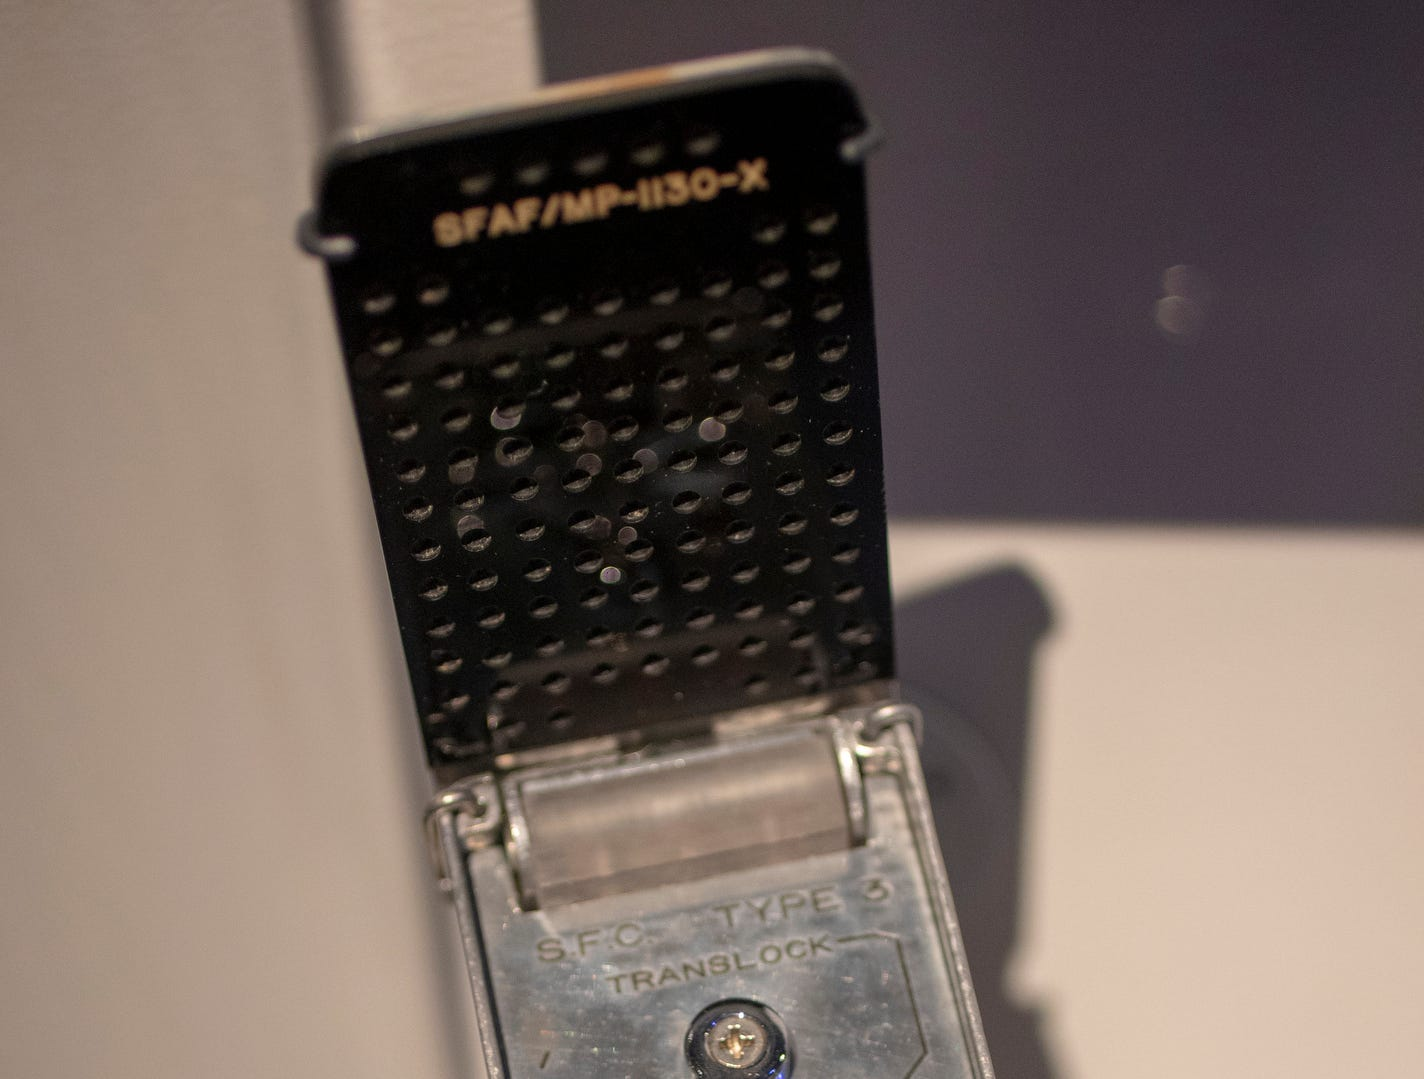 """A communicator used in """"Star Trek II: The Wrath of Khan"""" is seen at The Children's Museum of Indianapolis, Indianapolis, Wednesday, Jan. 23, 2019. The """"Star Trek: Exploring New Worlds"""" exhibit is made up of set pieces, ship models and outfits used during various Star Trek shows and movies and is on display at the museum from Feb. 2 through April 7, 2019."""